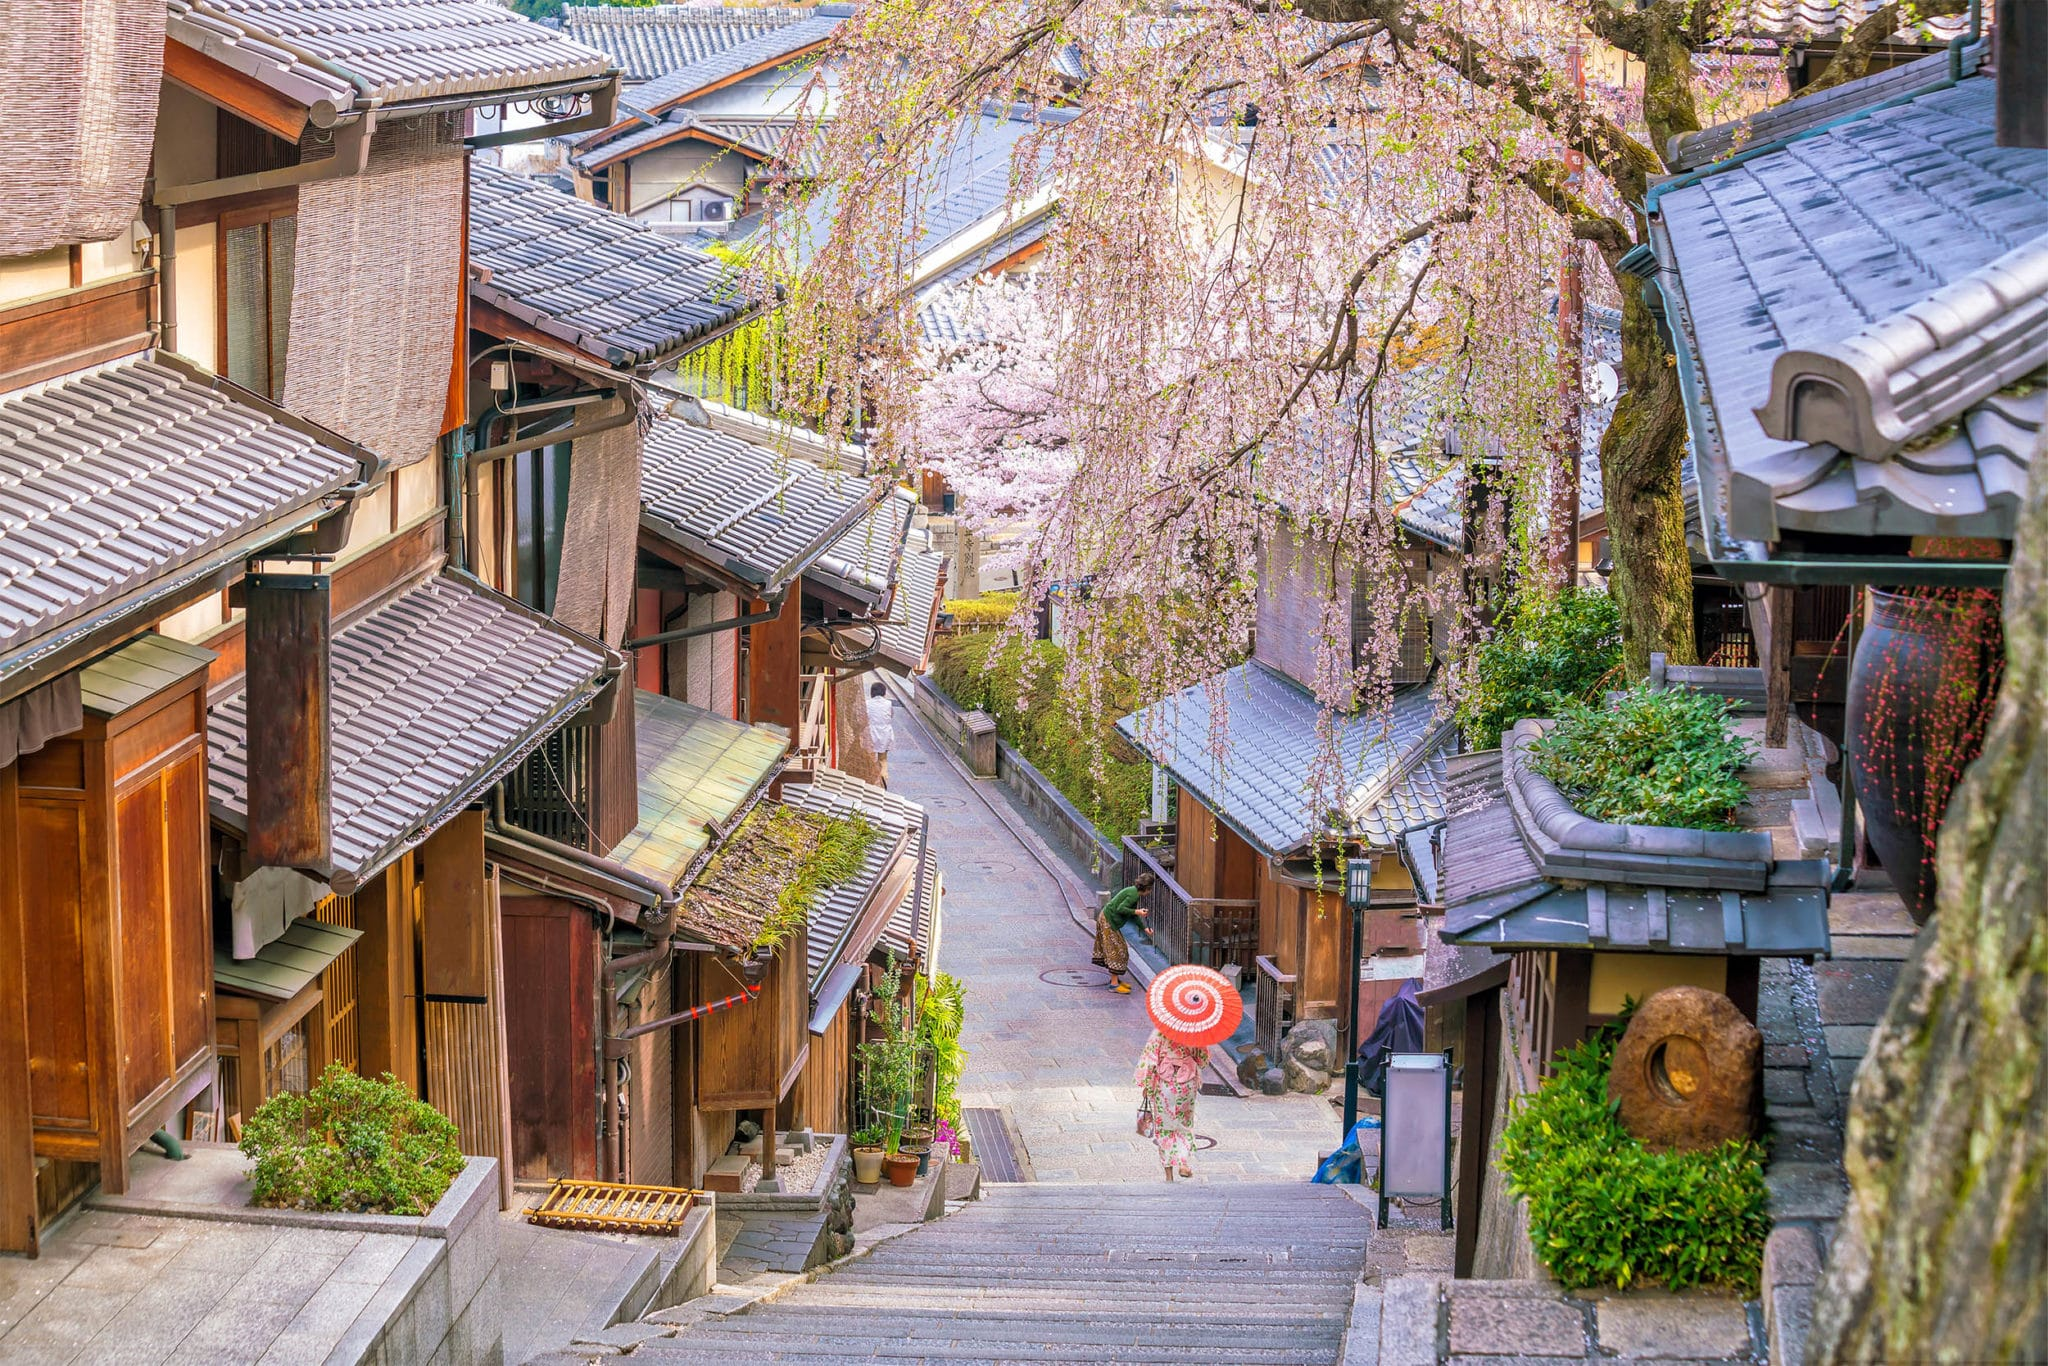 japan, tokio, tokyo, old town, commercial production, documentary shooting, documentary film, location, Location scouting, shooting, location management, film service production